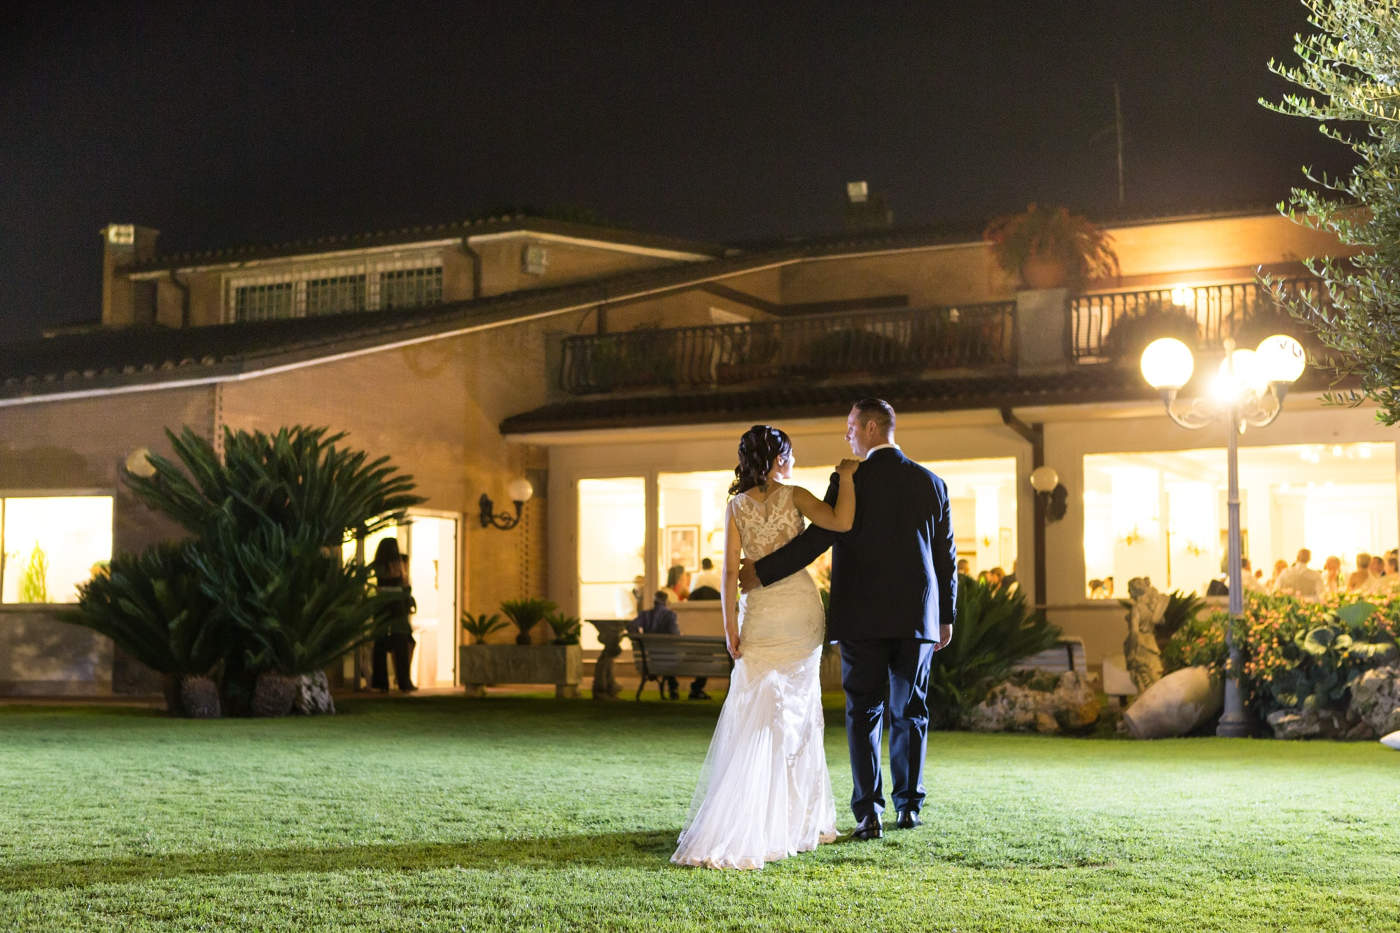 Location Matrimonio Roma - Villa Cinardi